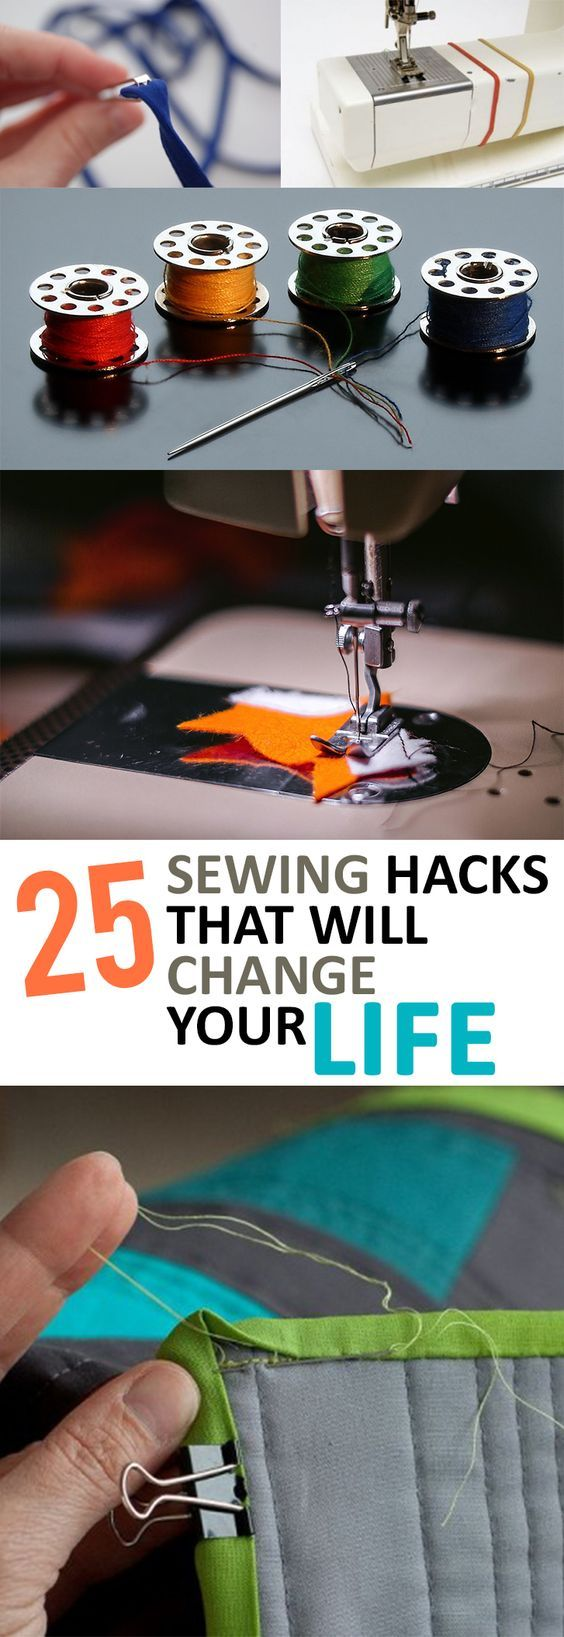 8 Easy Sewing Hacks Every Crafty Person Should Know #sewingprojects